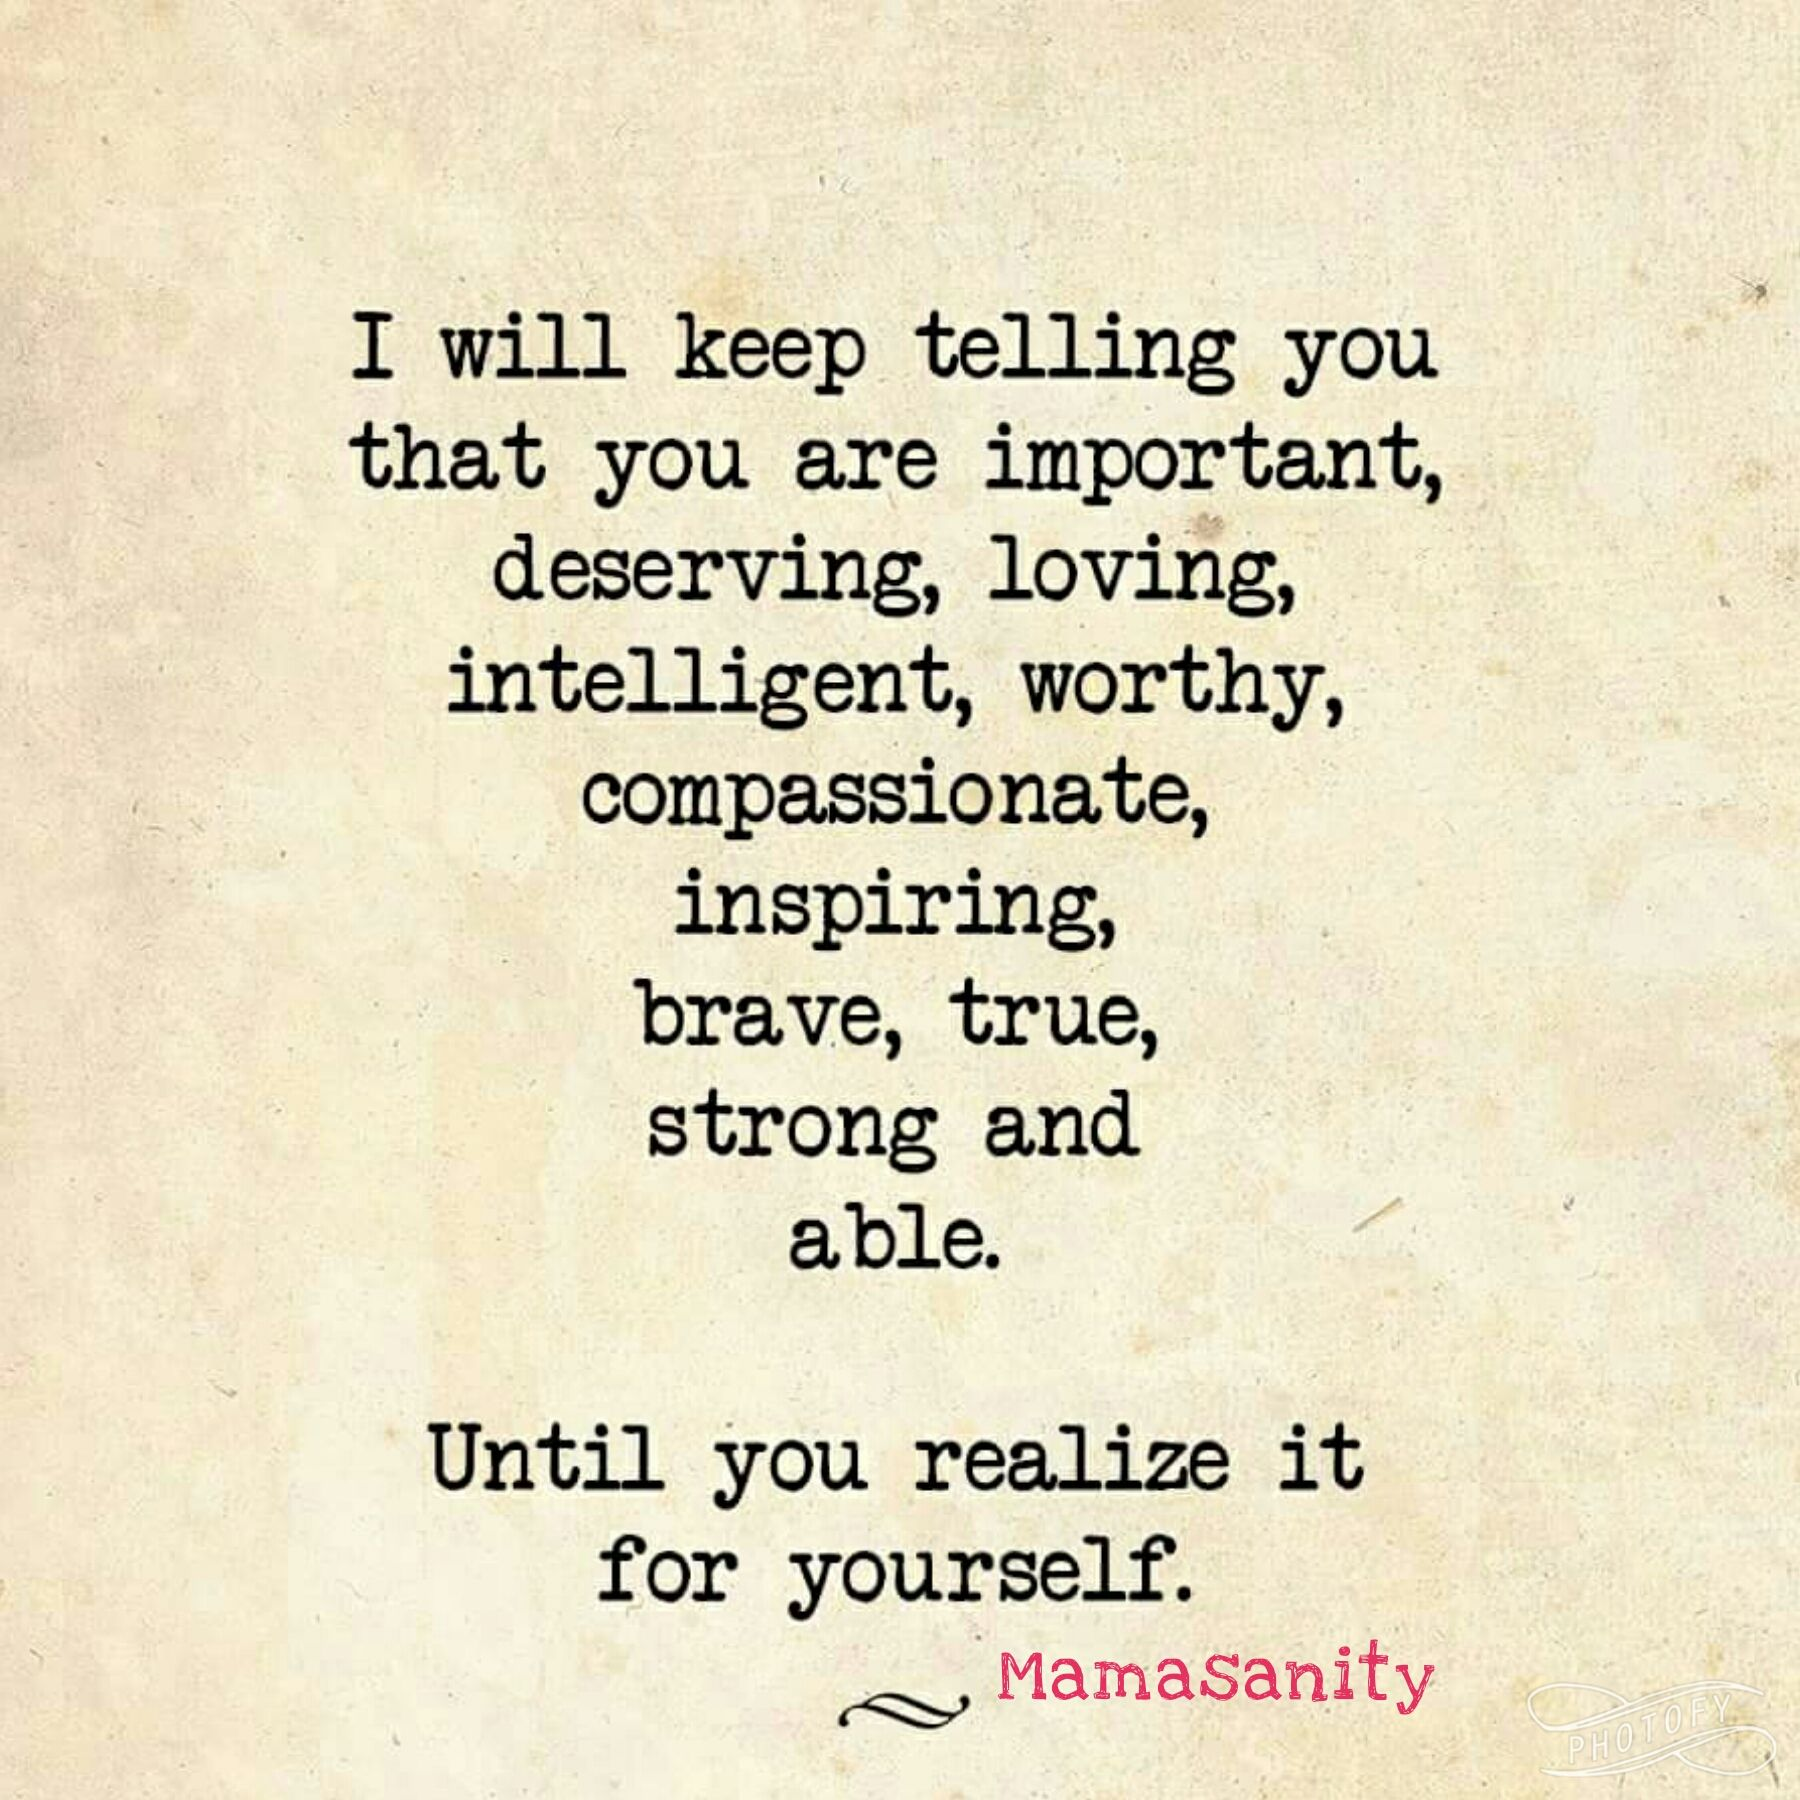 Good Morning Beautiful Just Wanted To Remind You That You Are Strong Worthy Deserving Beautiful Loved Good Morning Quotes Told You So Classic Quotes